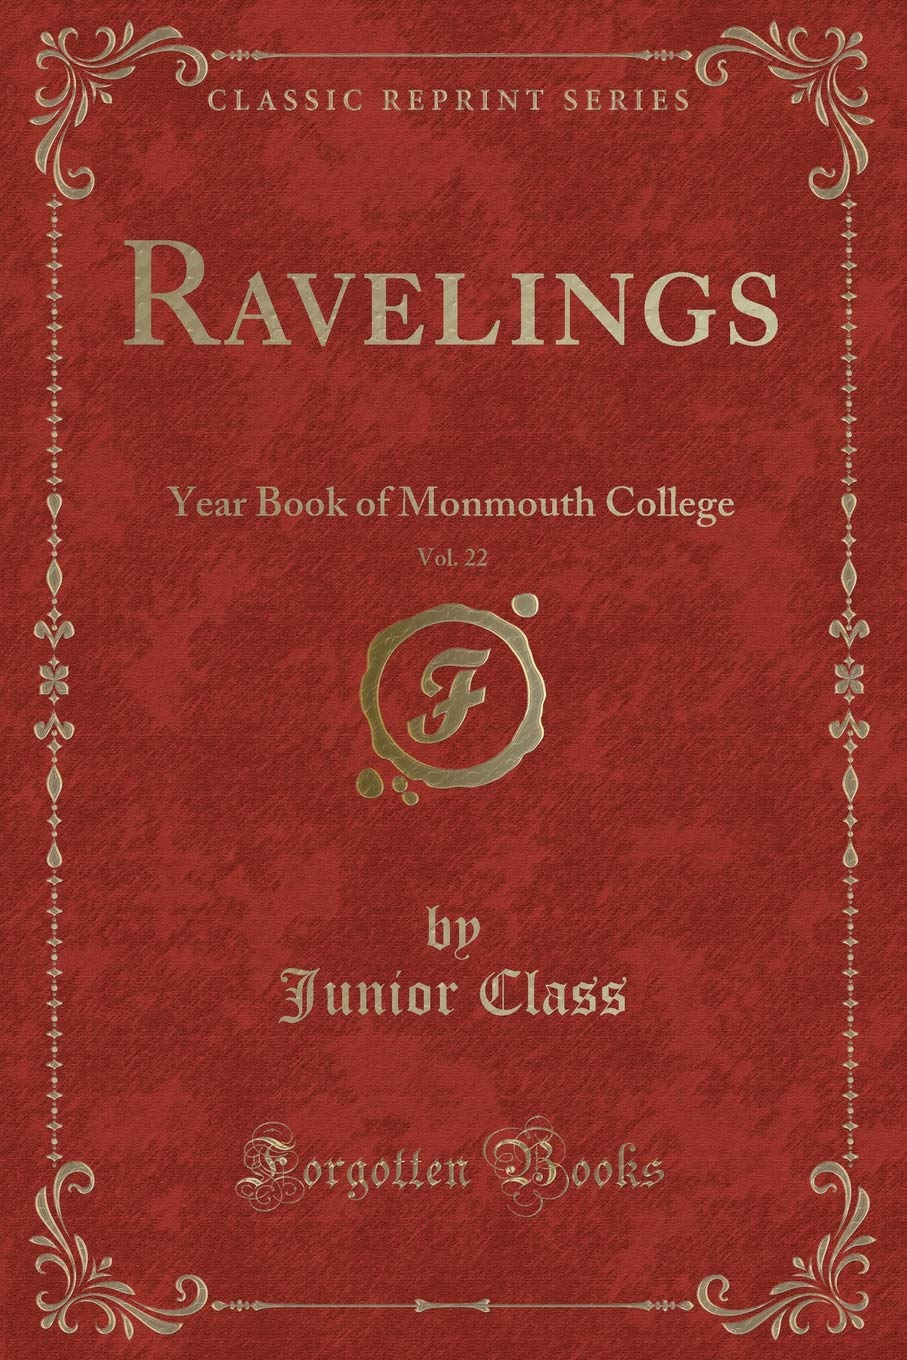 Ravelings, Vol. 22: Year Book of Monmouth College (Classic Reprint) ebook